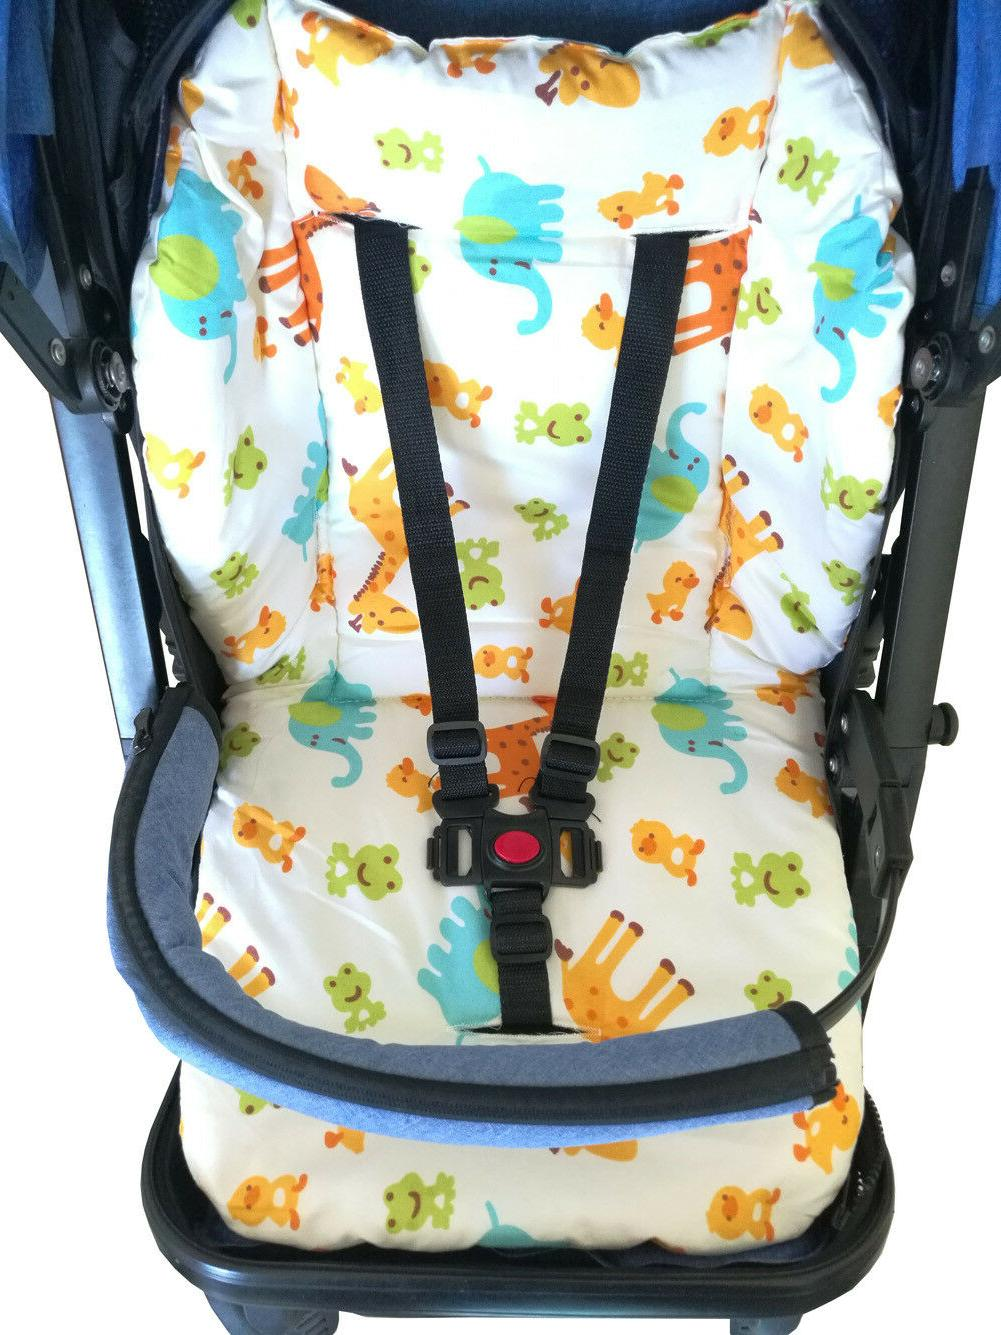 Baby Seat Cushion Pad Straps Suit